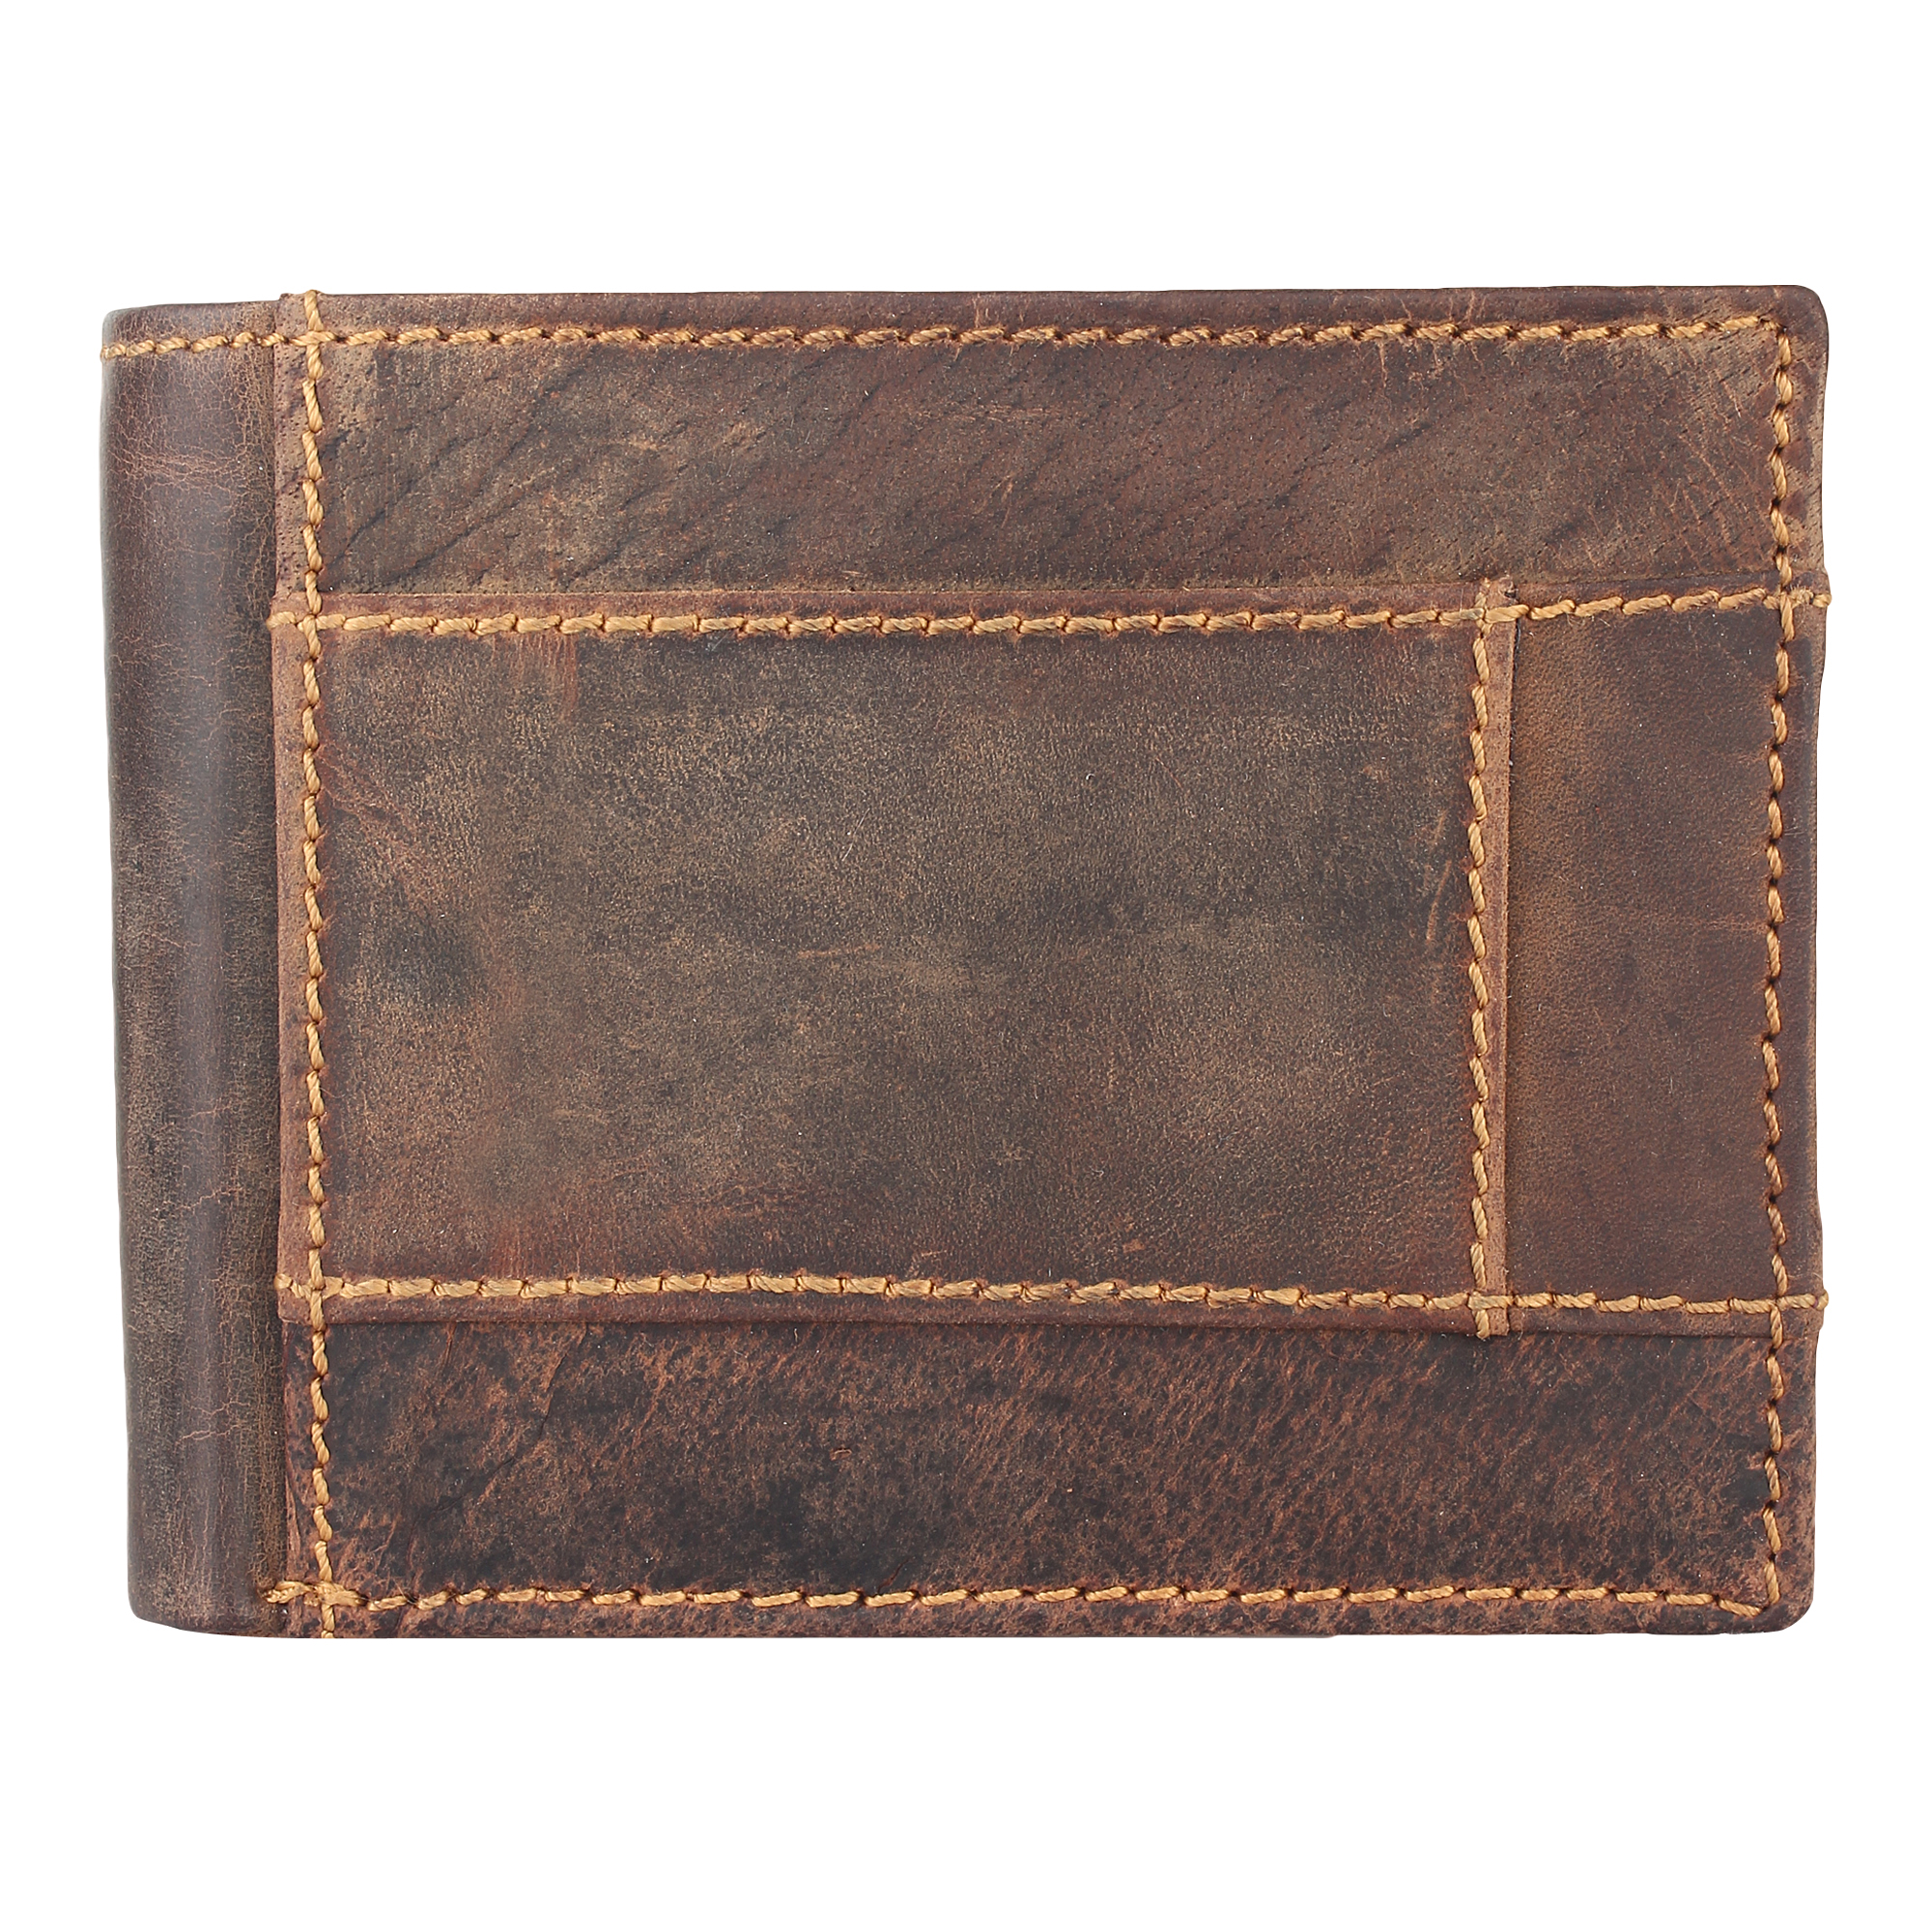 Leather Wallets Manufacturers in Germany, Leather Wallets Suppliers in Germany, Leather Wallets Wholesalers in Germany, Leather Wallets Traders in Germany